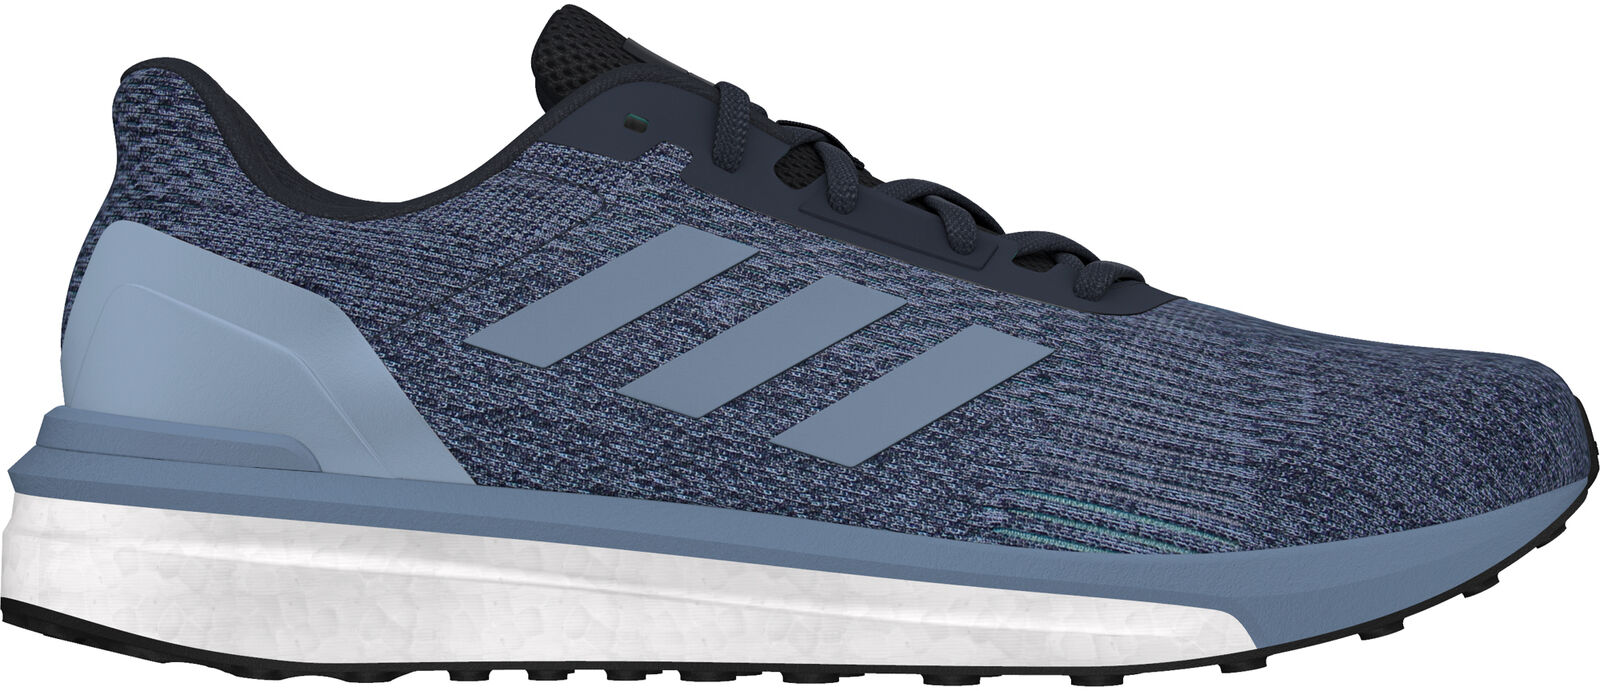 Adidas Solar Drive ST Boost Mens Running shoes - bluee